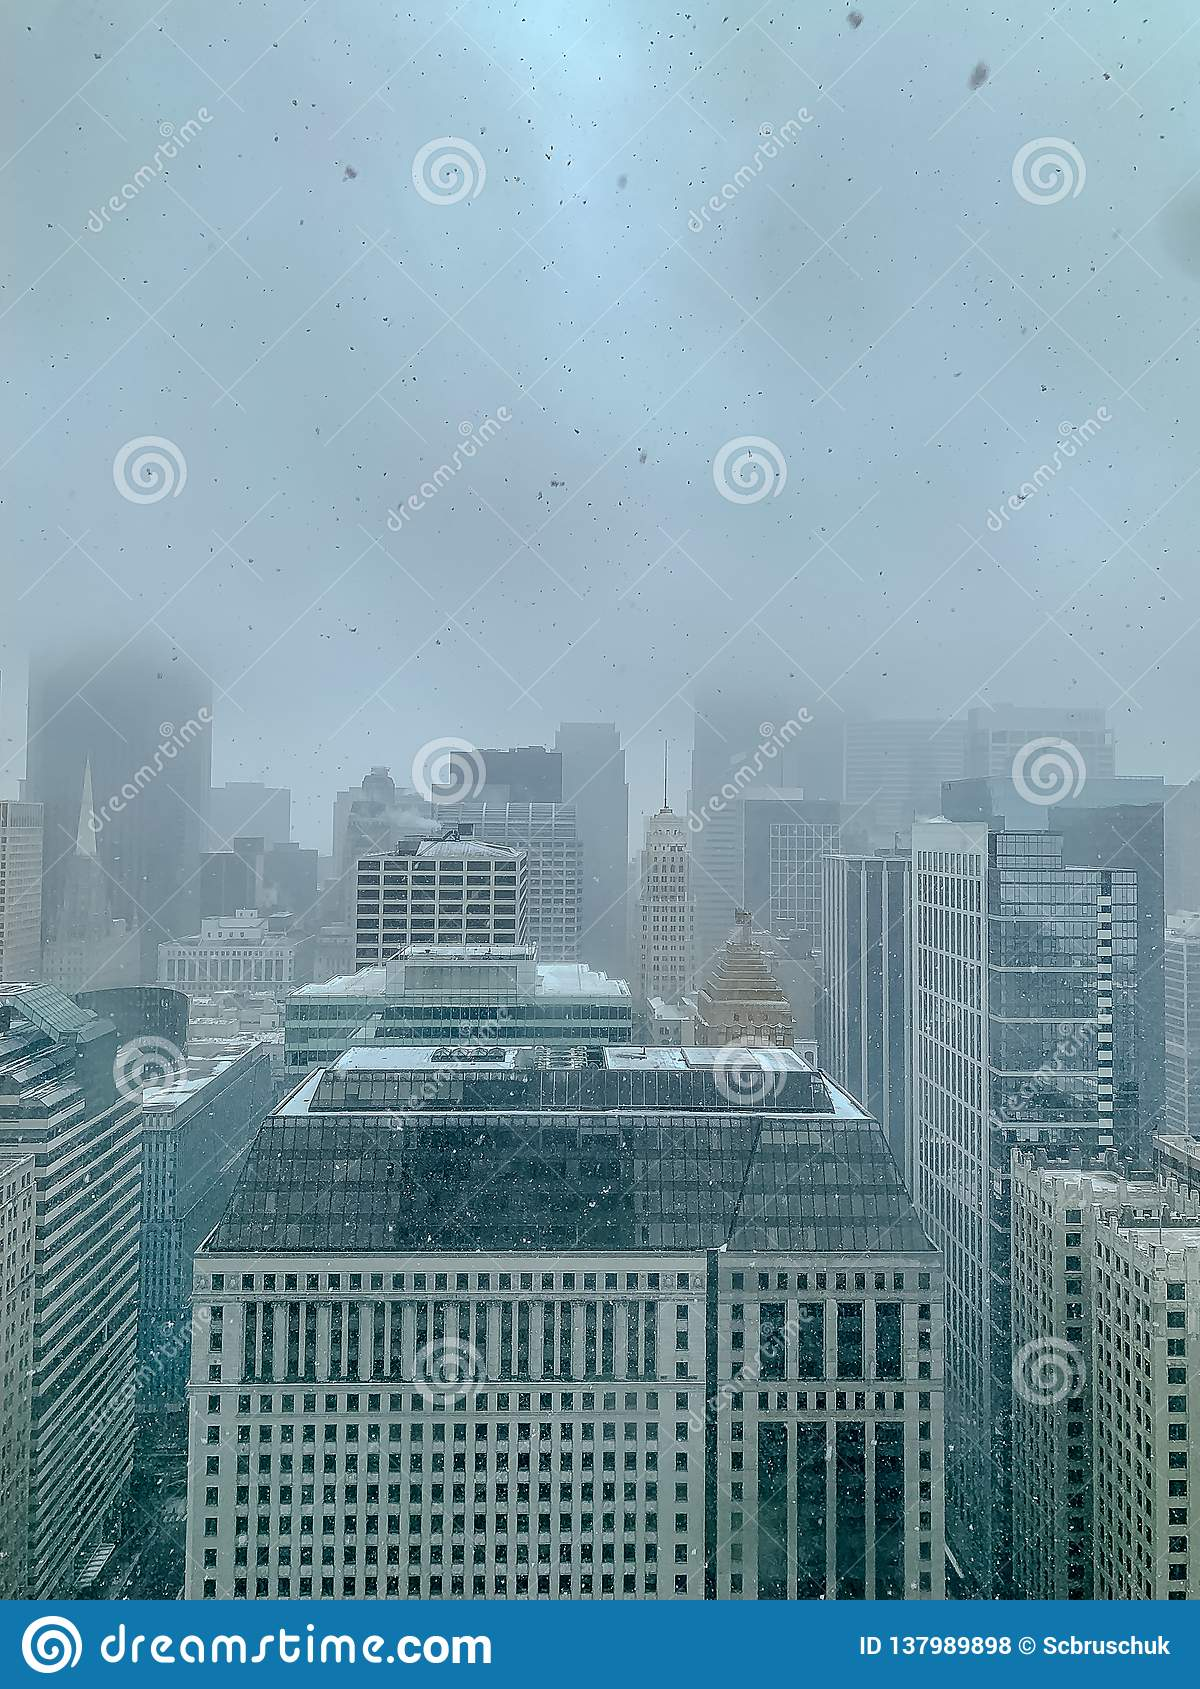 Aerial view of skyscrapers on a foggy, snowy day in Chicago during January